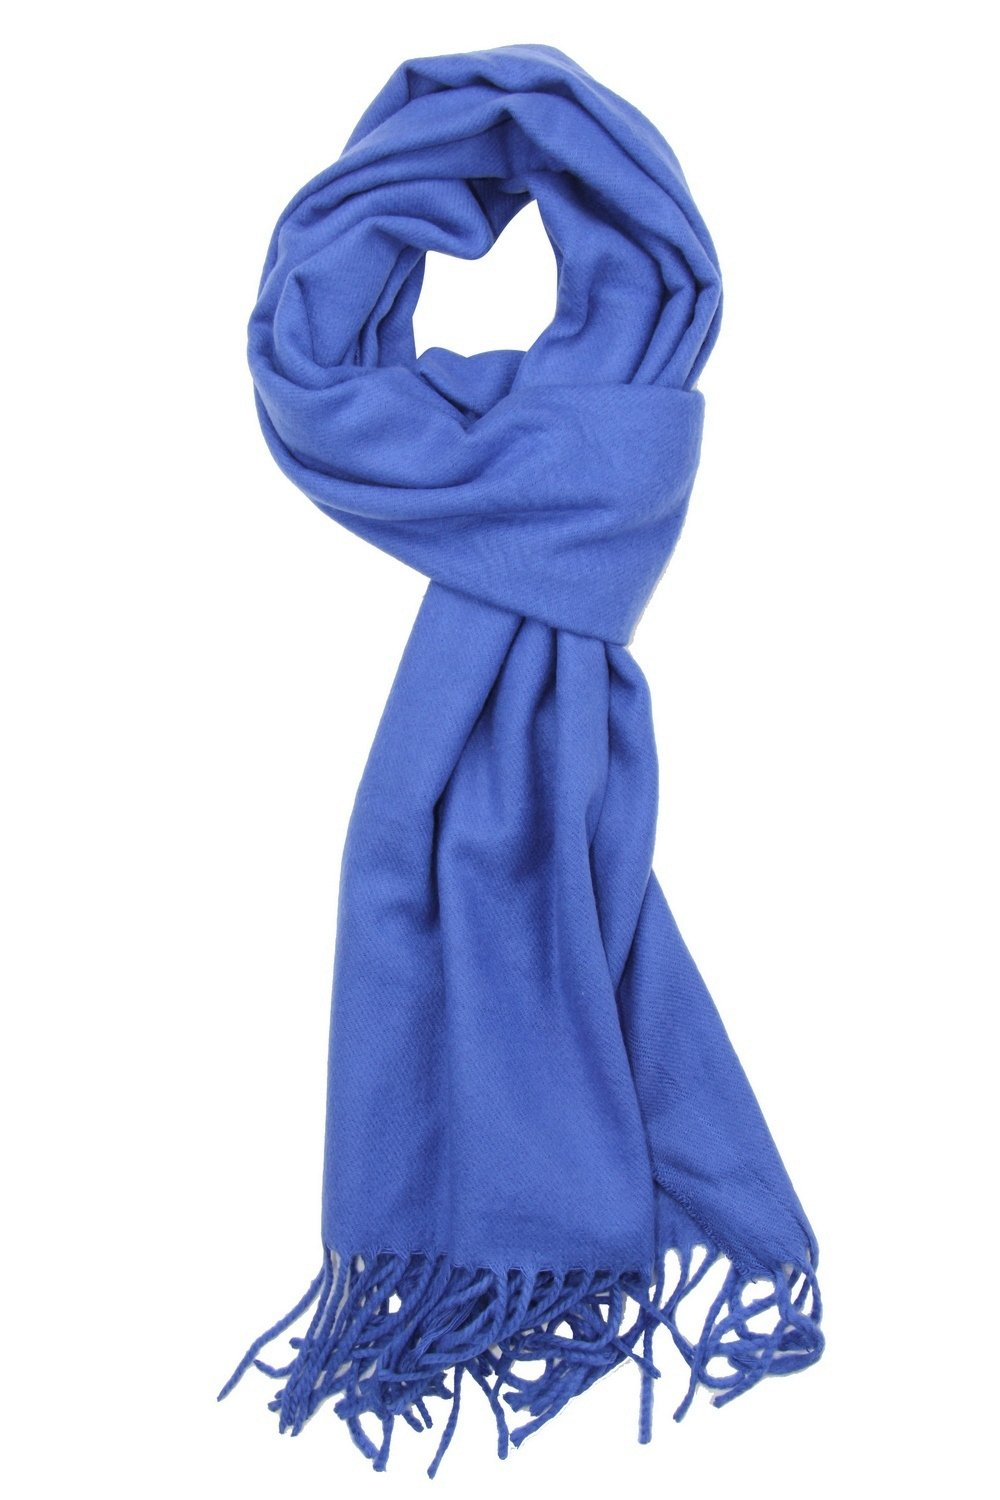 Achillea Soft & Warm Solid Color Cashmere Feel Winter Scarf Unisex (Royal Blue)